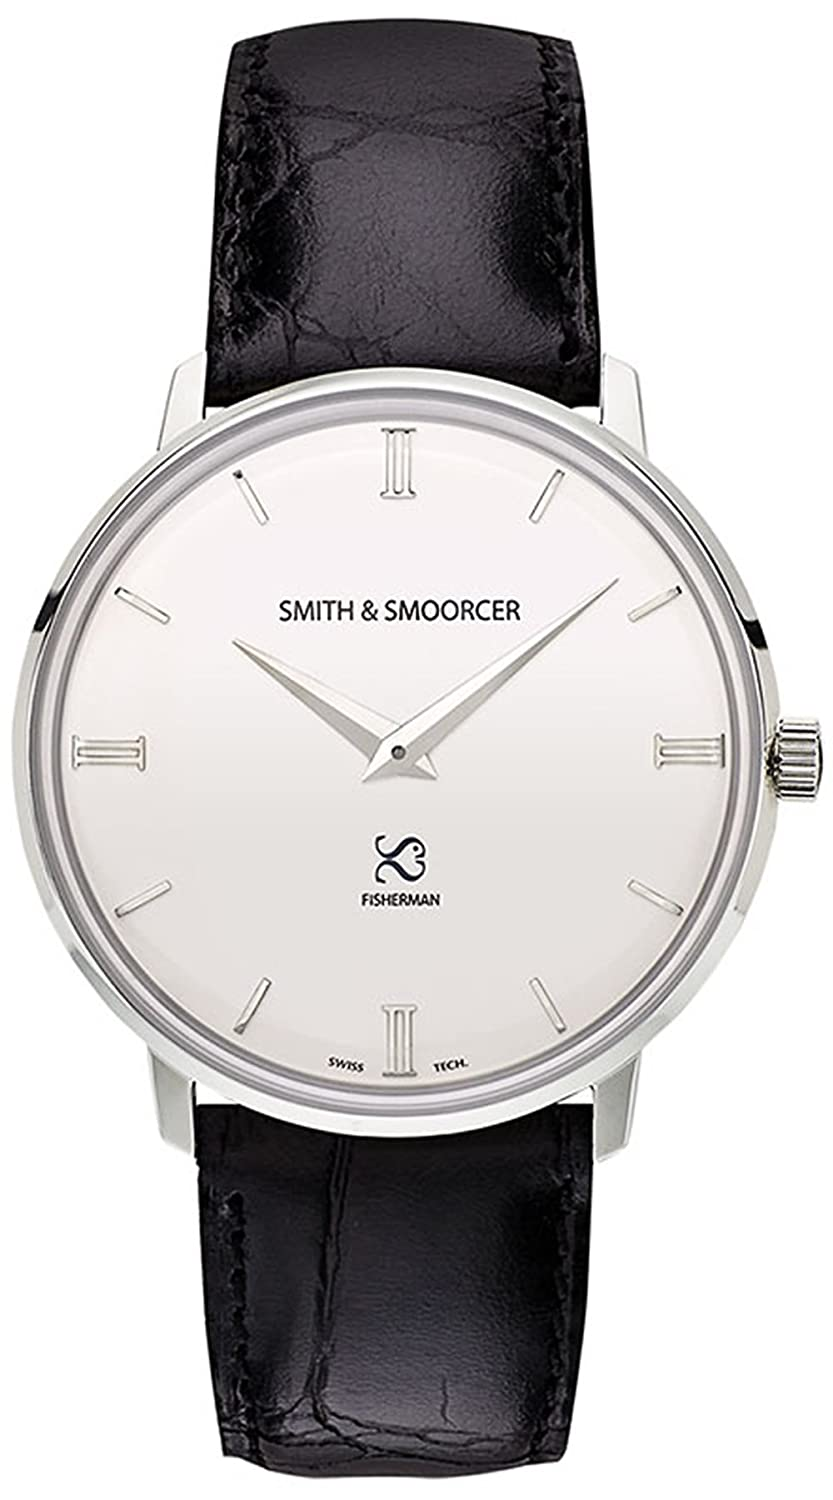 Smith & Smoorcer Fisherman Snowy Luxury Black Herr uhren F-1516-LUX-P-B-00